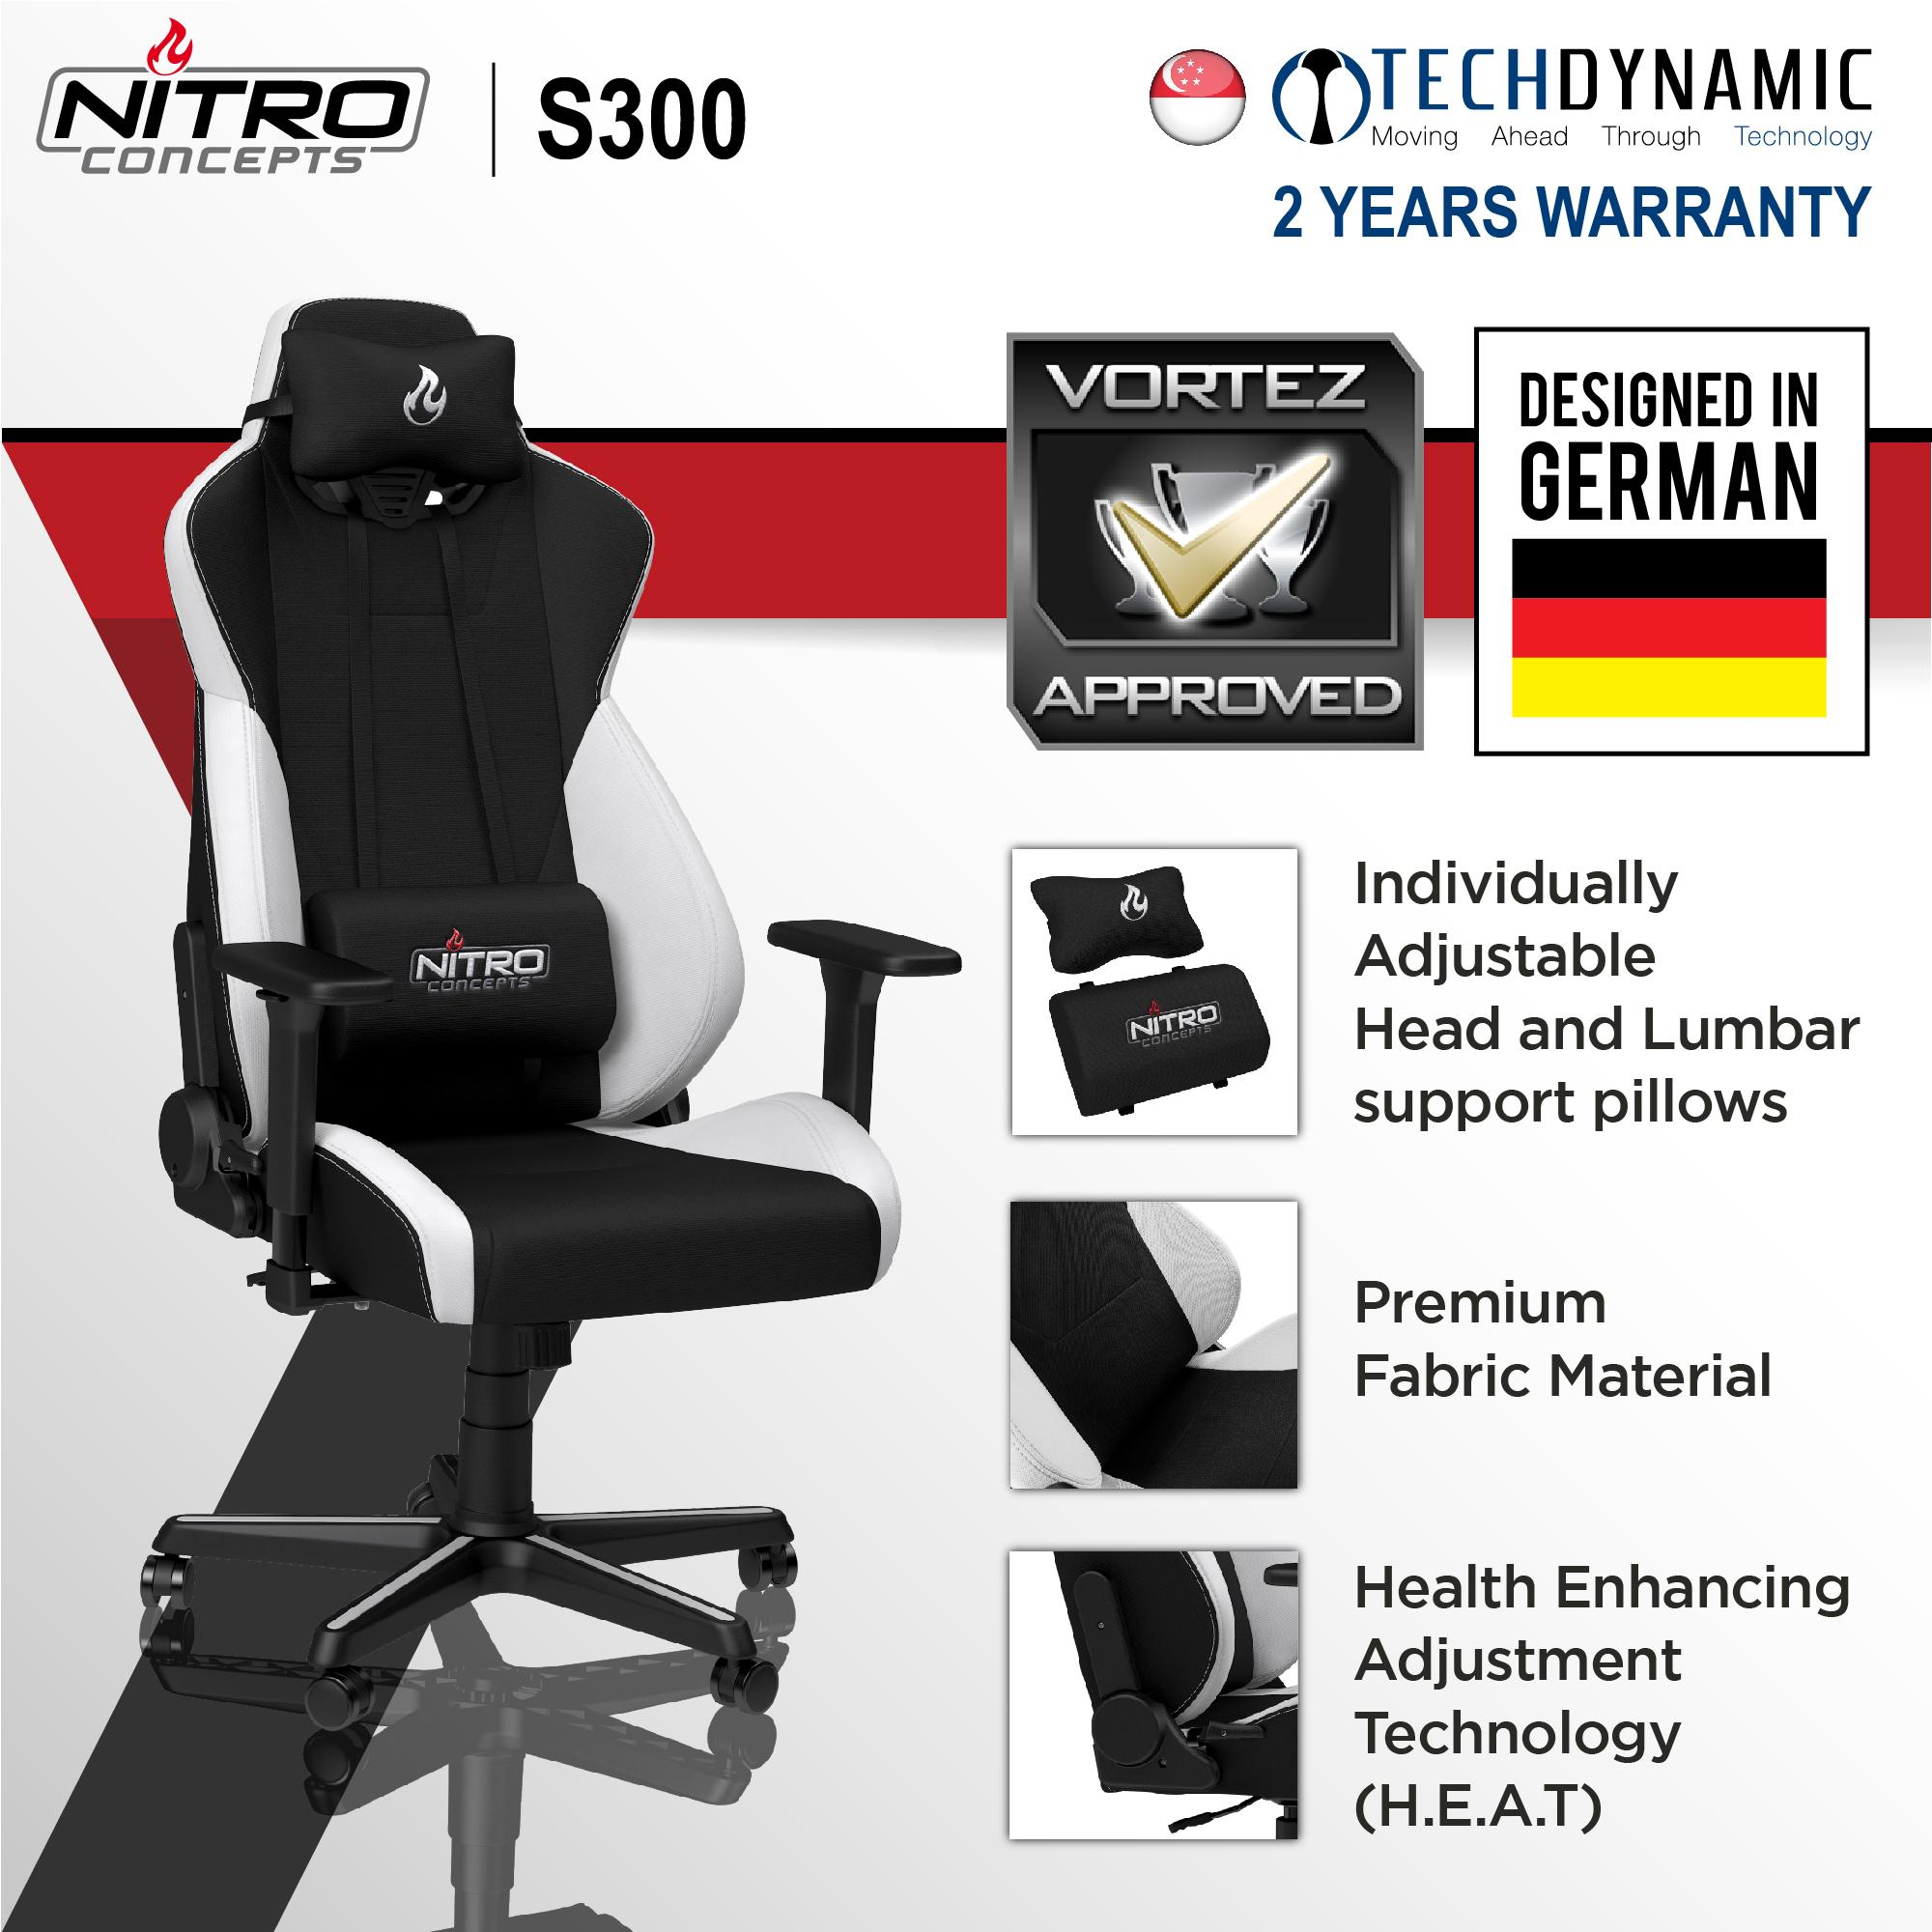 Nitro S300 GAMING CHAIR Black/Black-Red/Black-White  [Available in 3 colors]